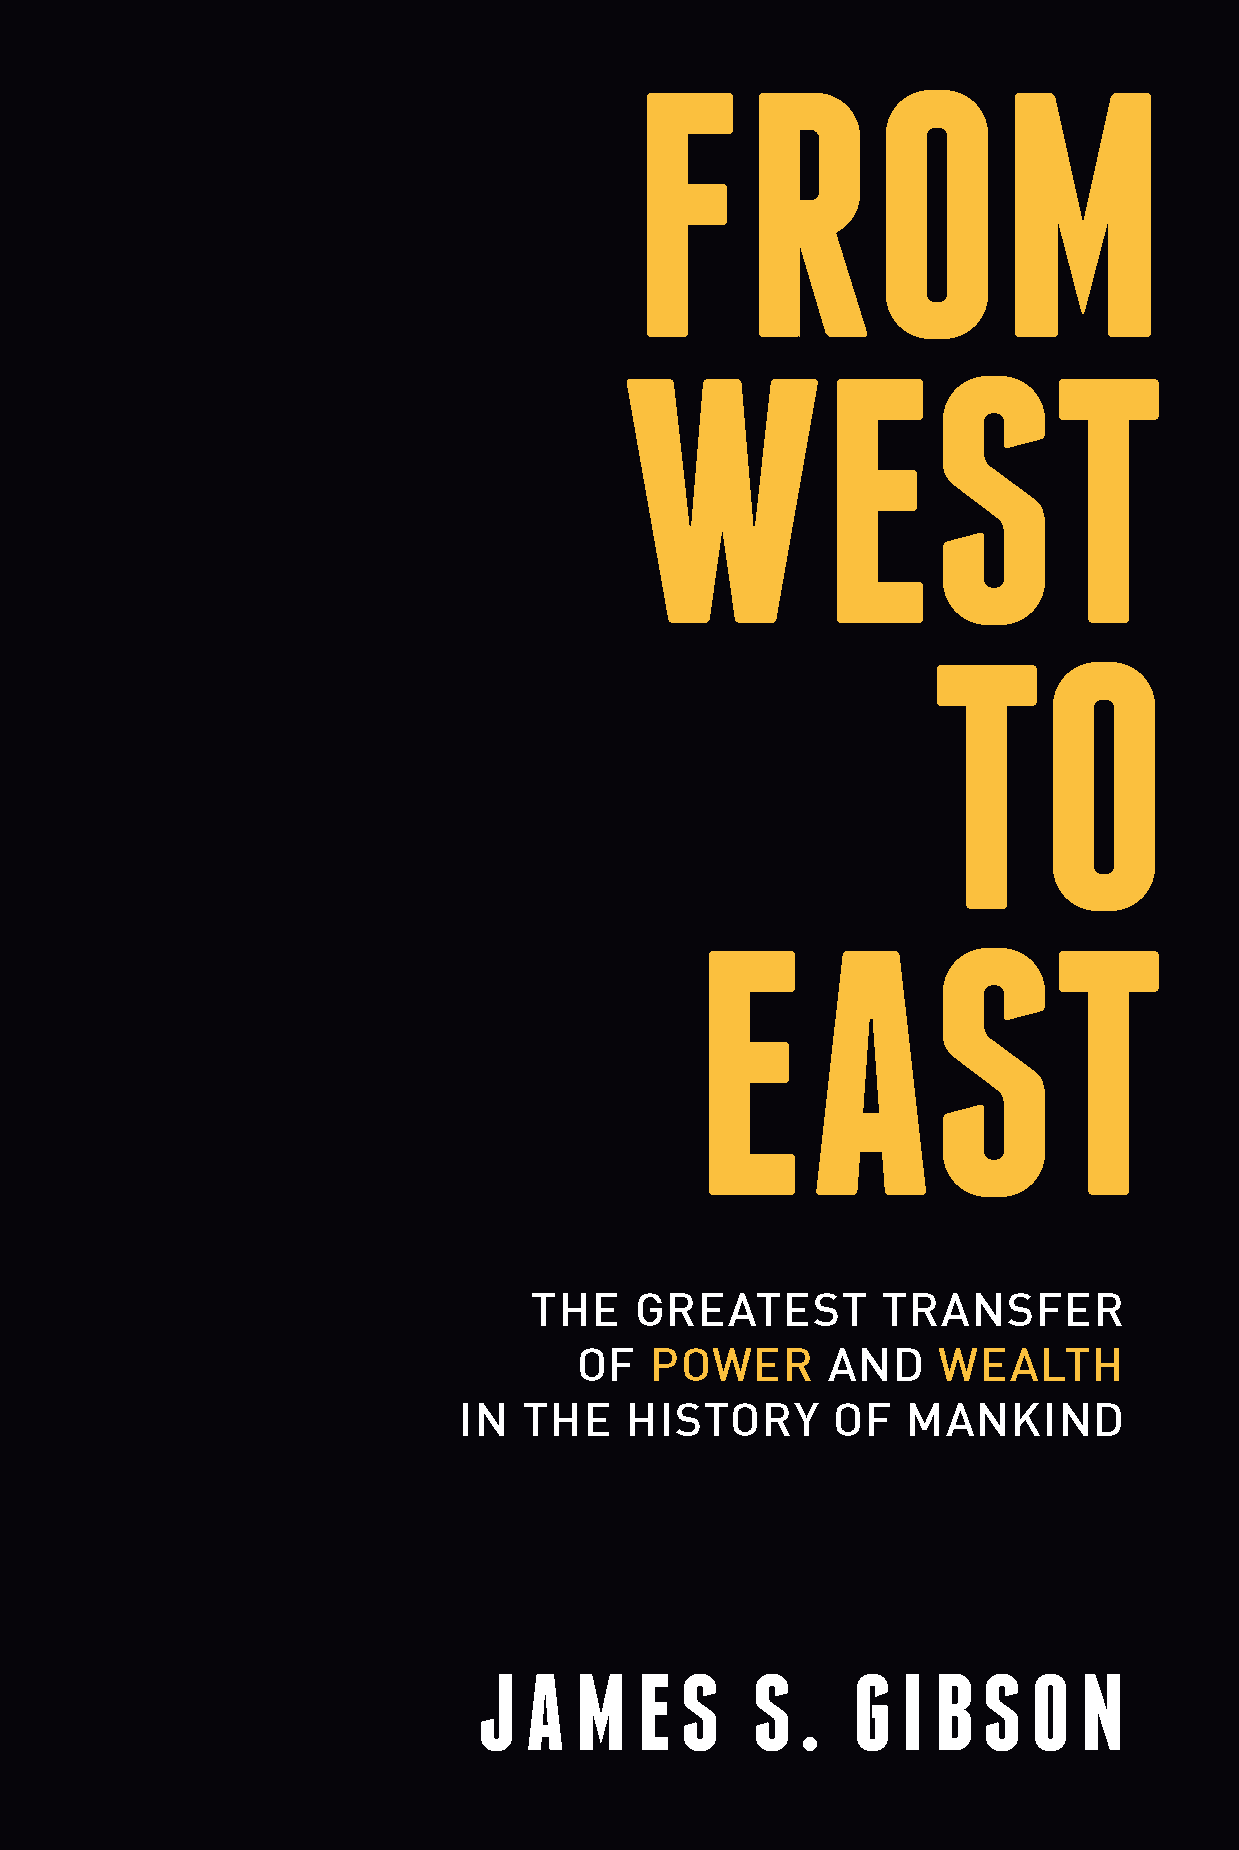 Buy From West to East on Amazon